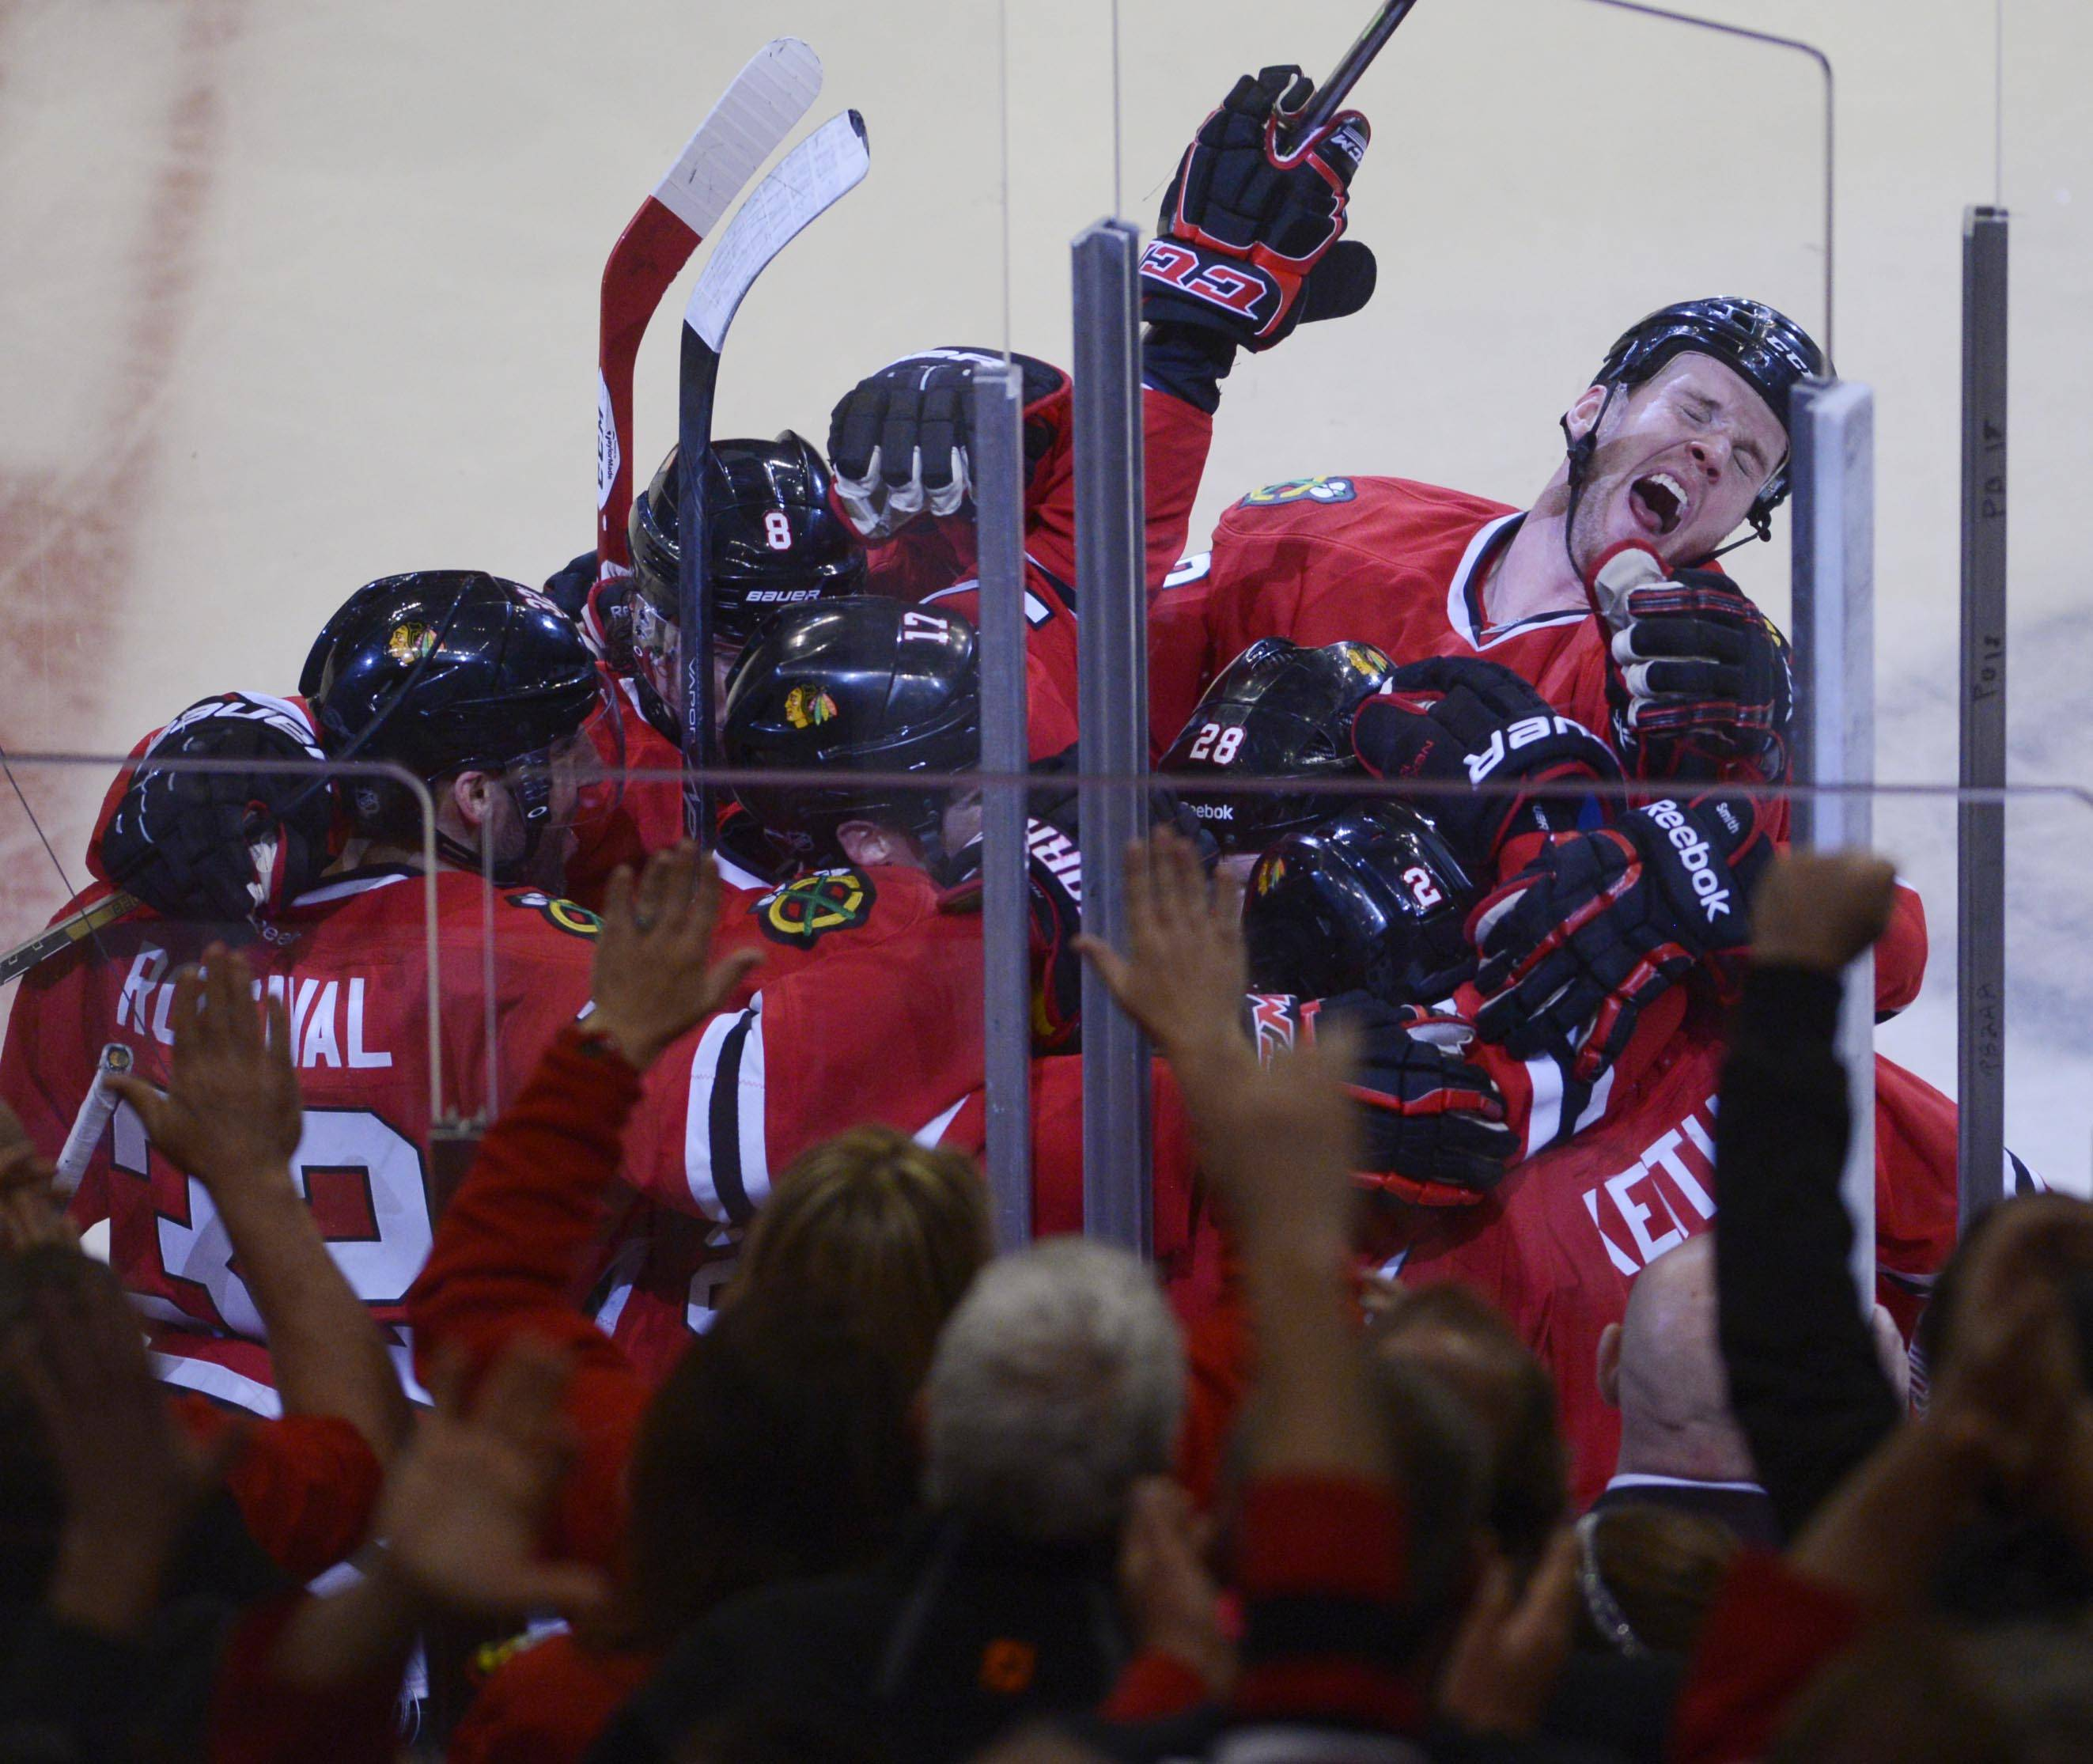 Patrick Kane's the hero as Hawks tie series